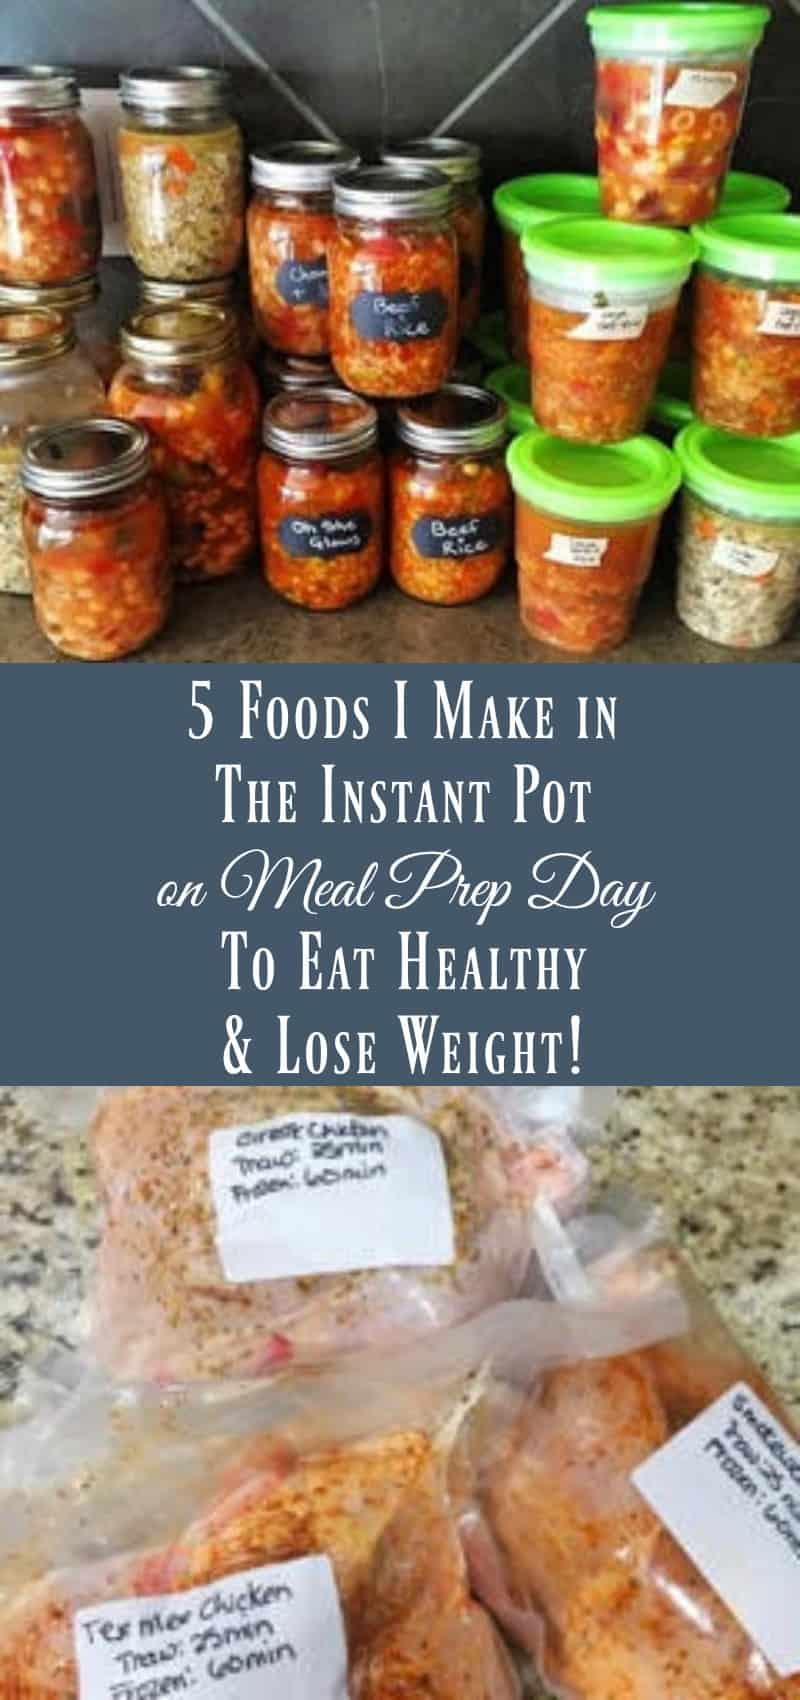 5 Foods I Make In The Instant Pot on Meal Prep Day to Eat Healthy and Lose Weight